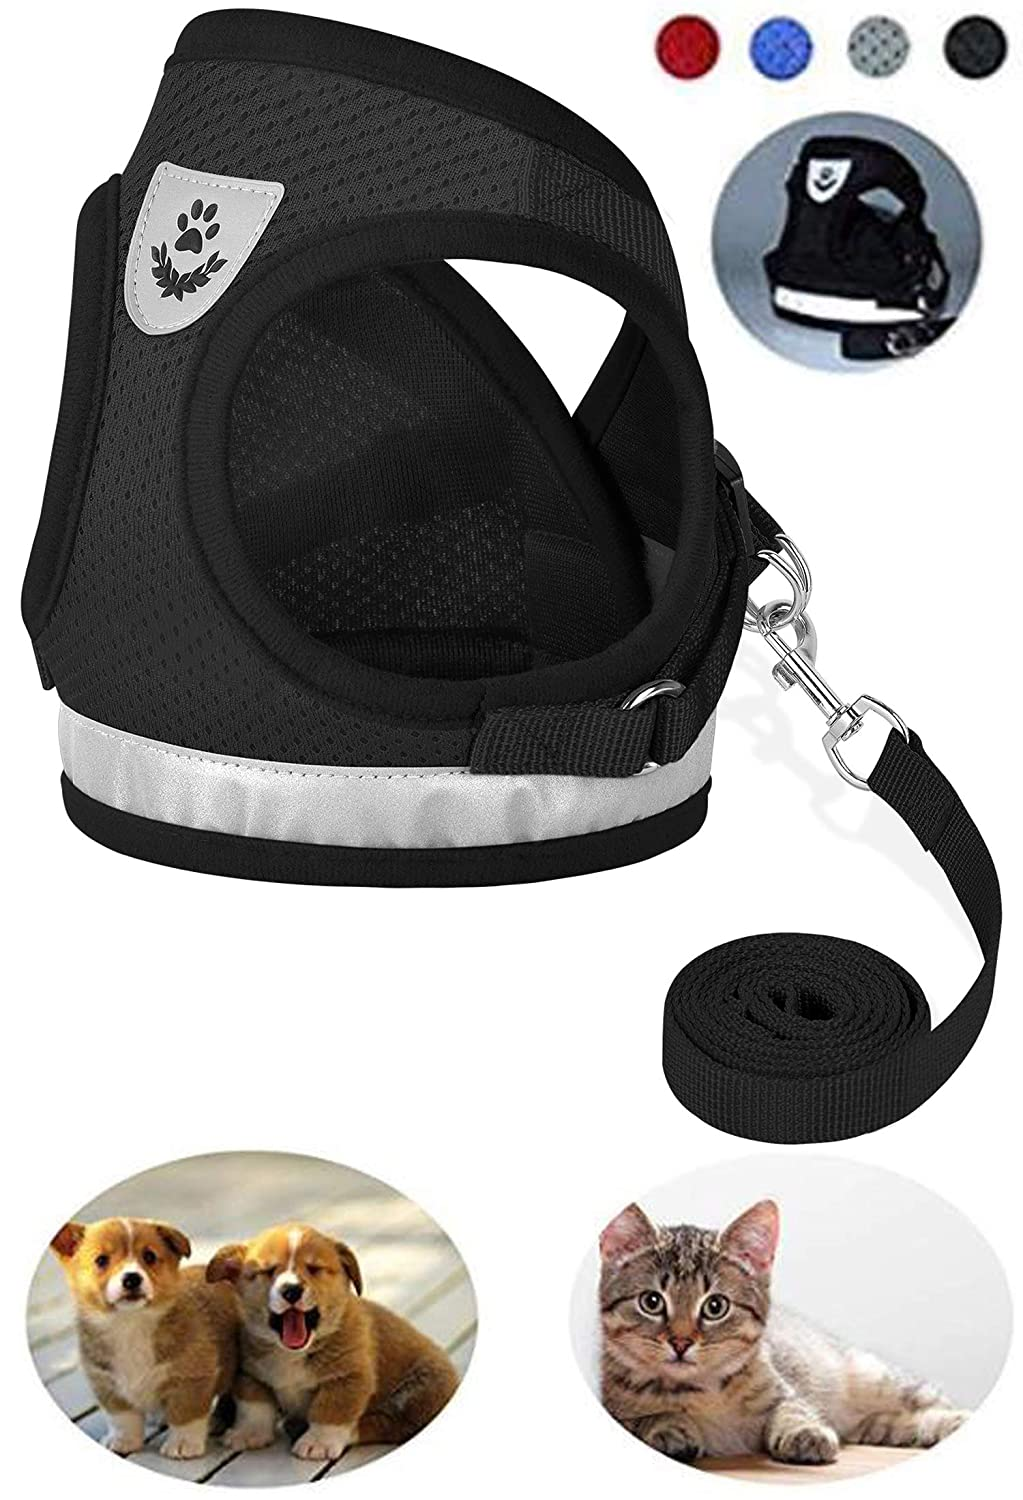 9. Gauterf Dog/Cat Universal Harness